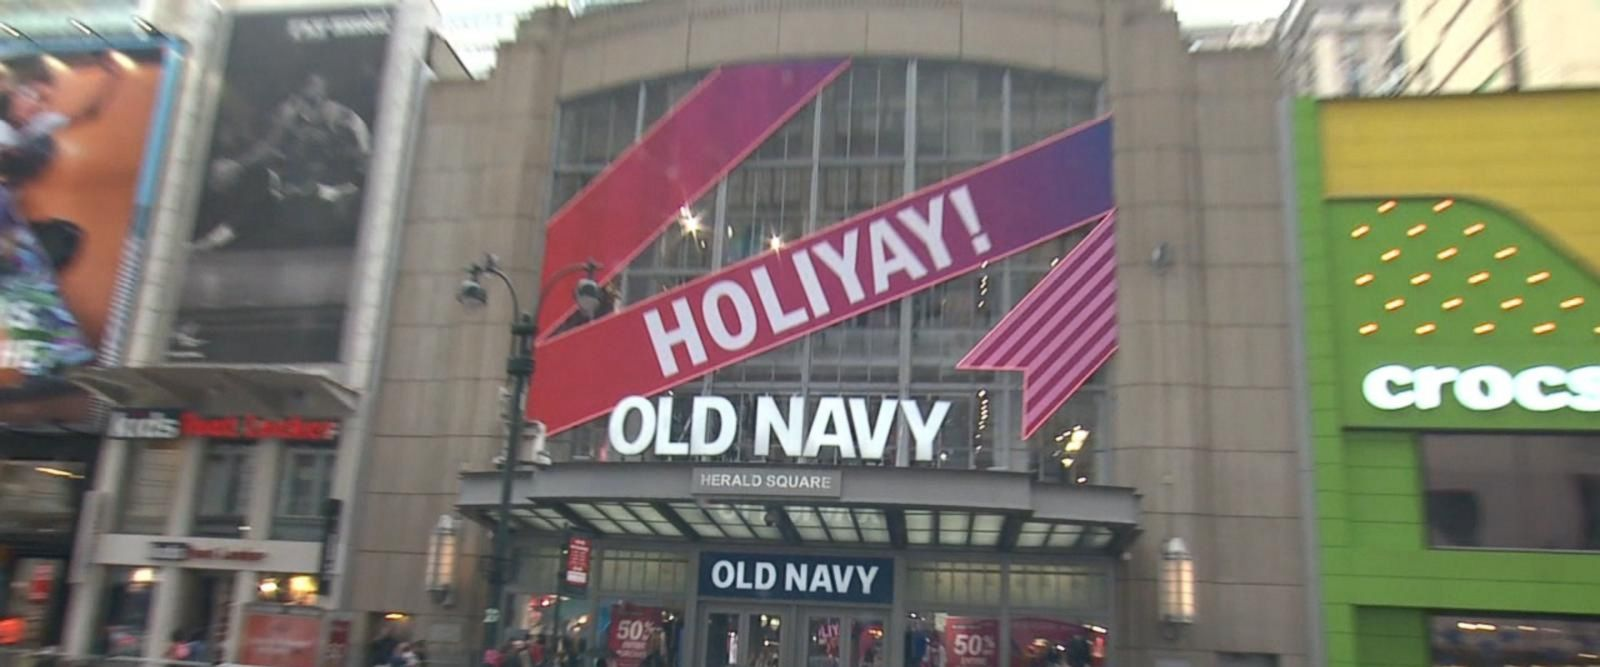 VIDEO: Old Navy CEO discusses rapidly changing retail industry